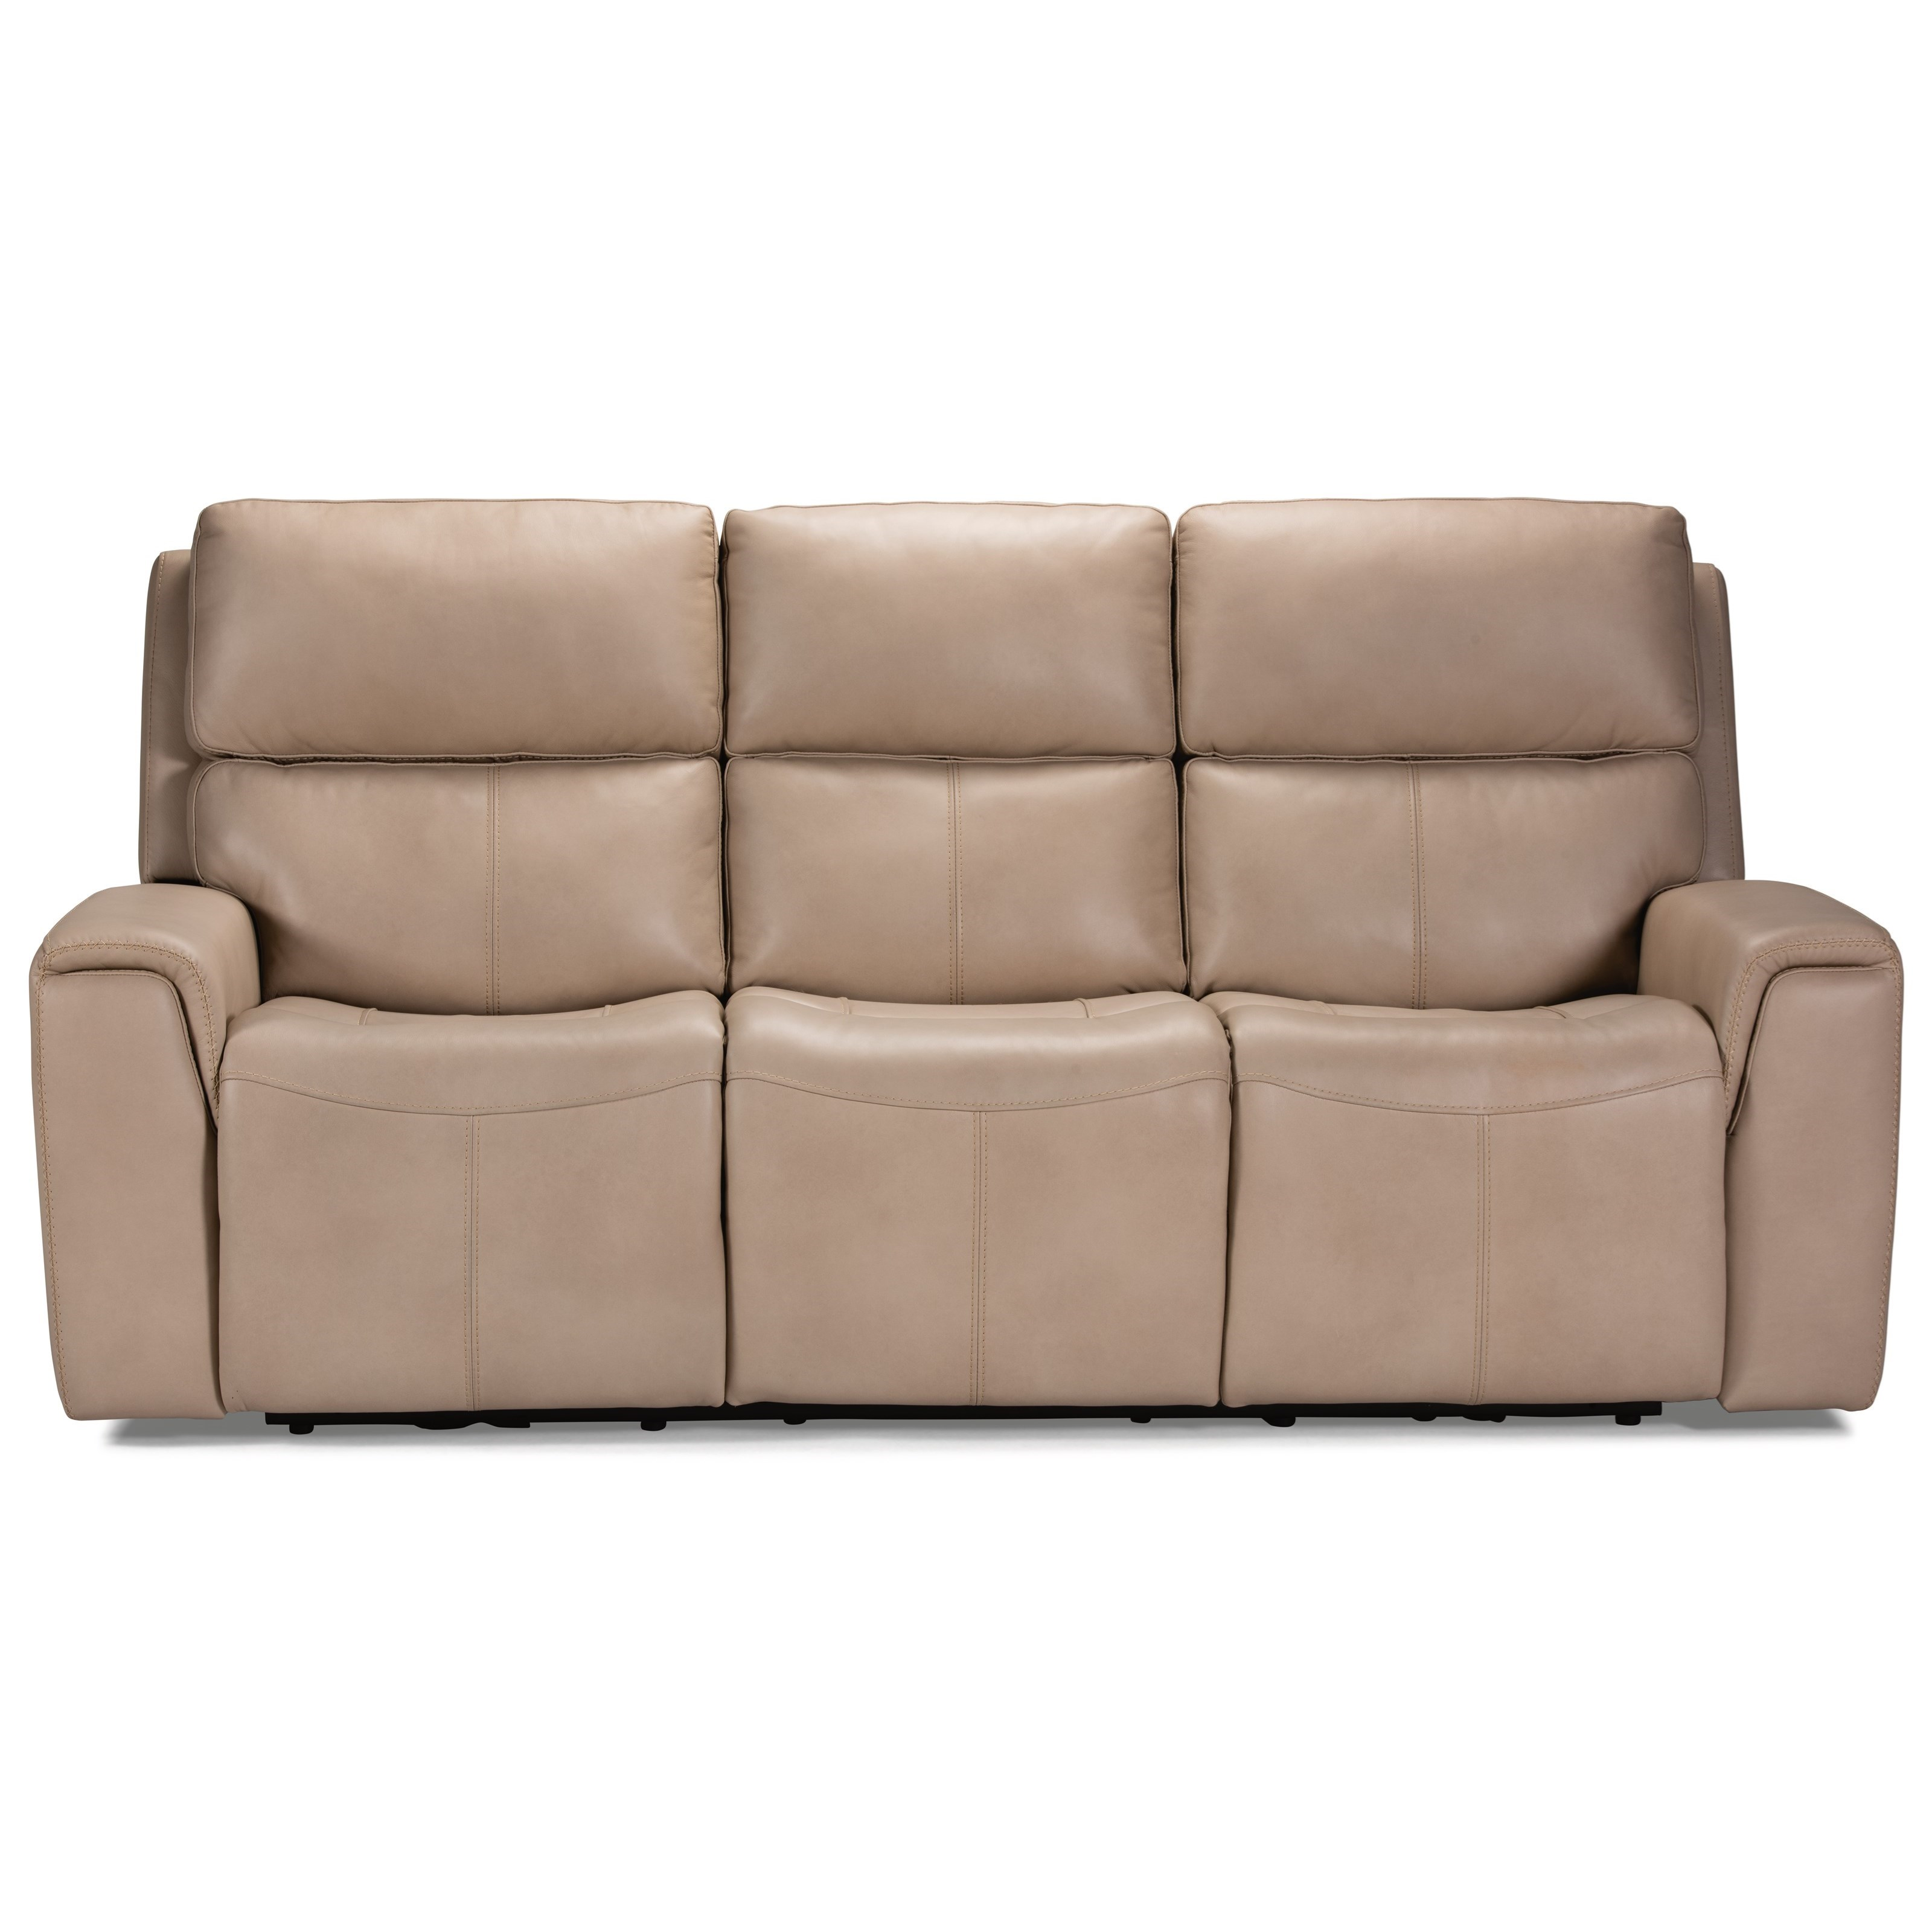 Latitudes - Jarvis Power Reclining Sofa by Flexsteel at Turk Furniture